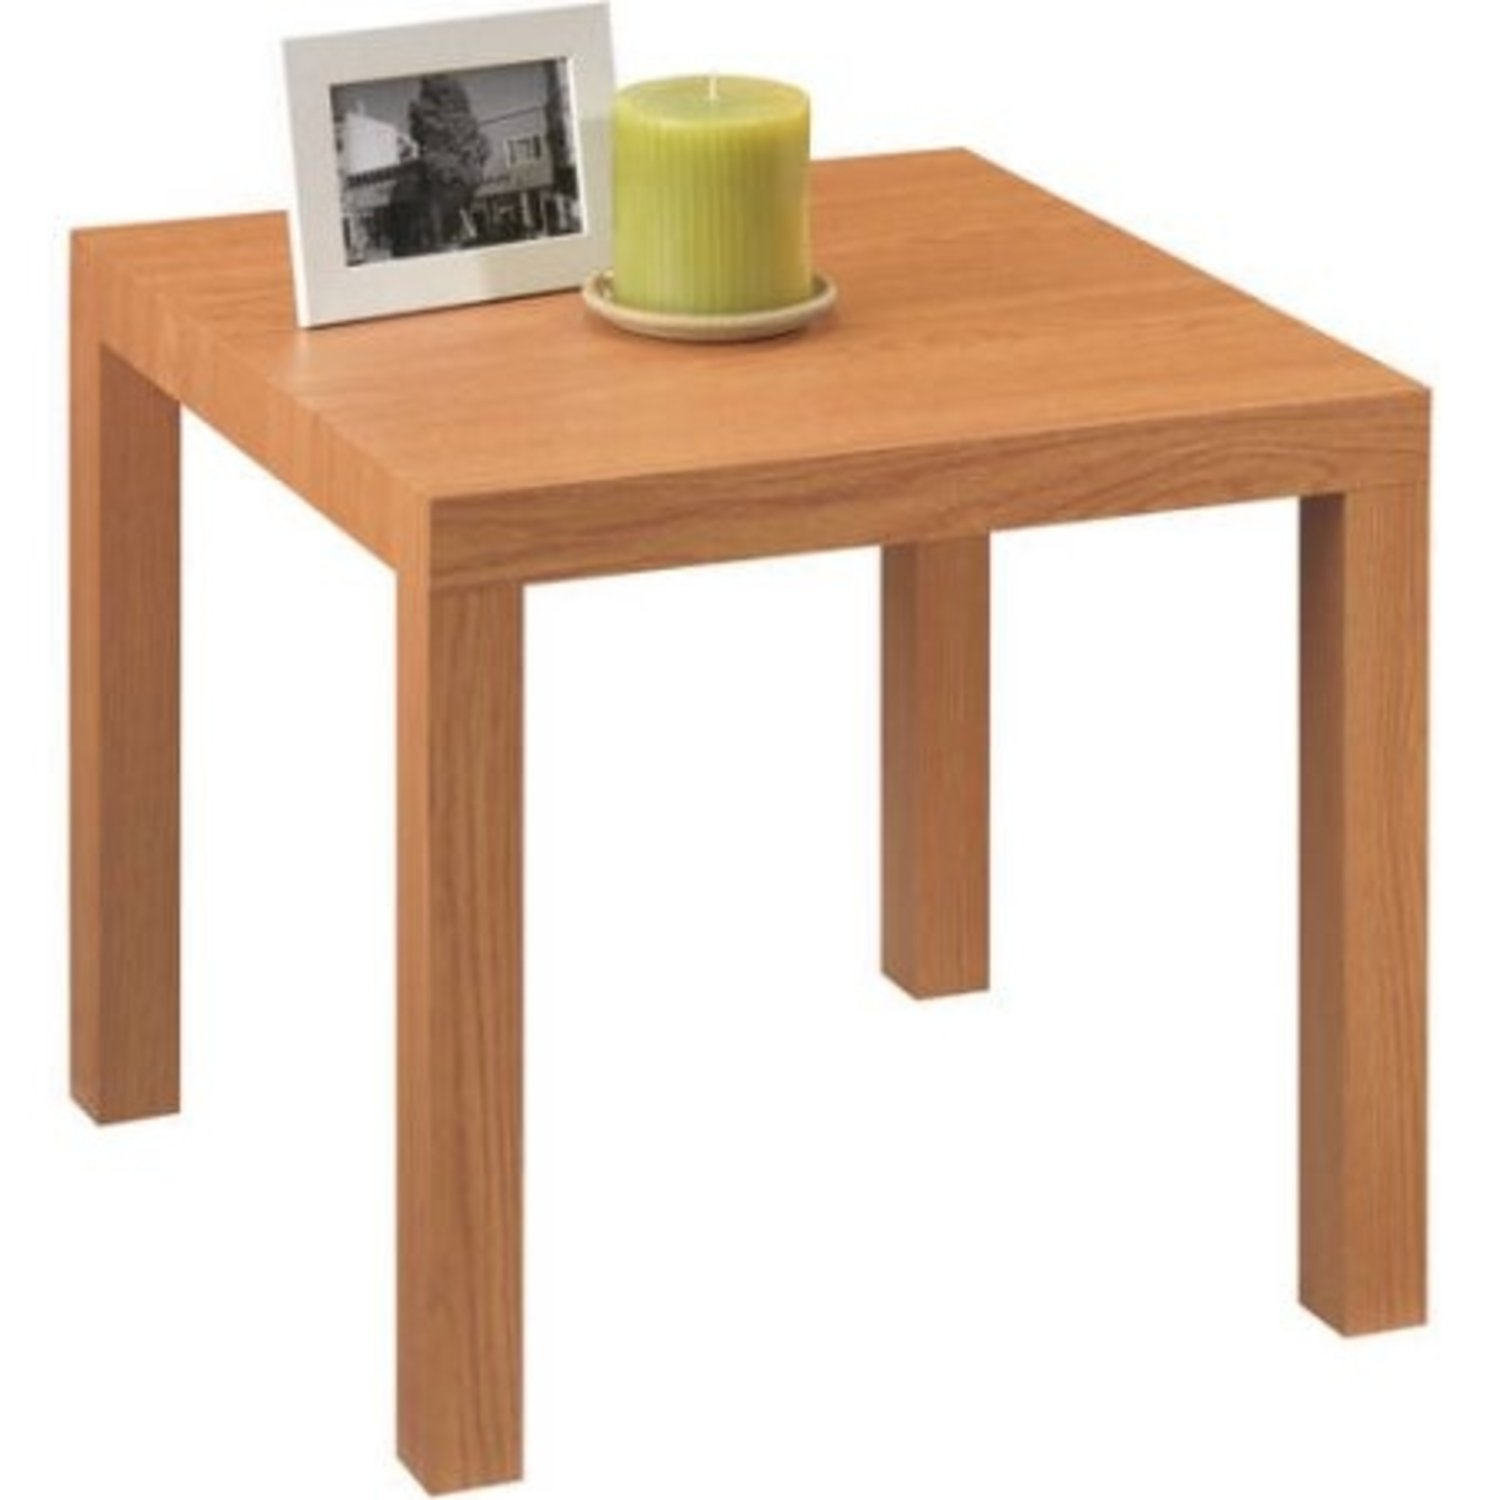 Mainstays Parsons Side End Table, Multiple Colors (Natural)